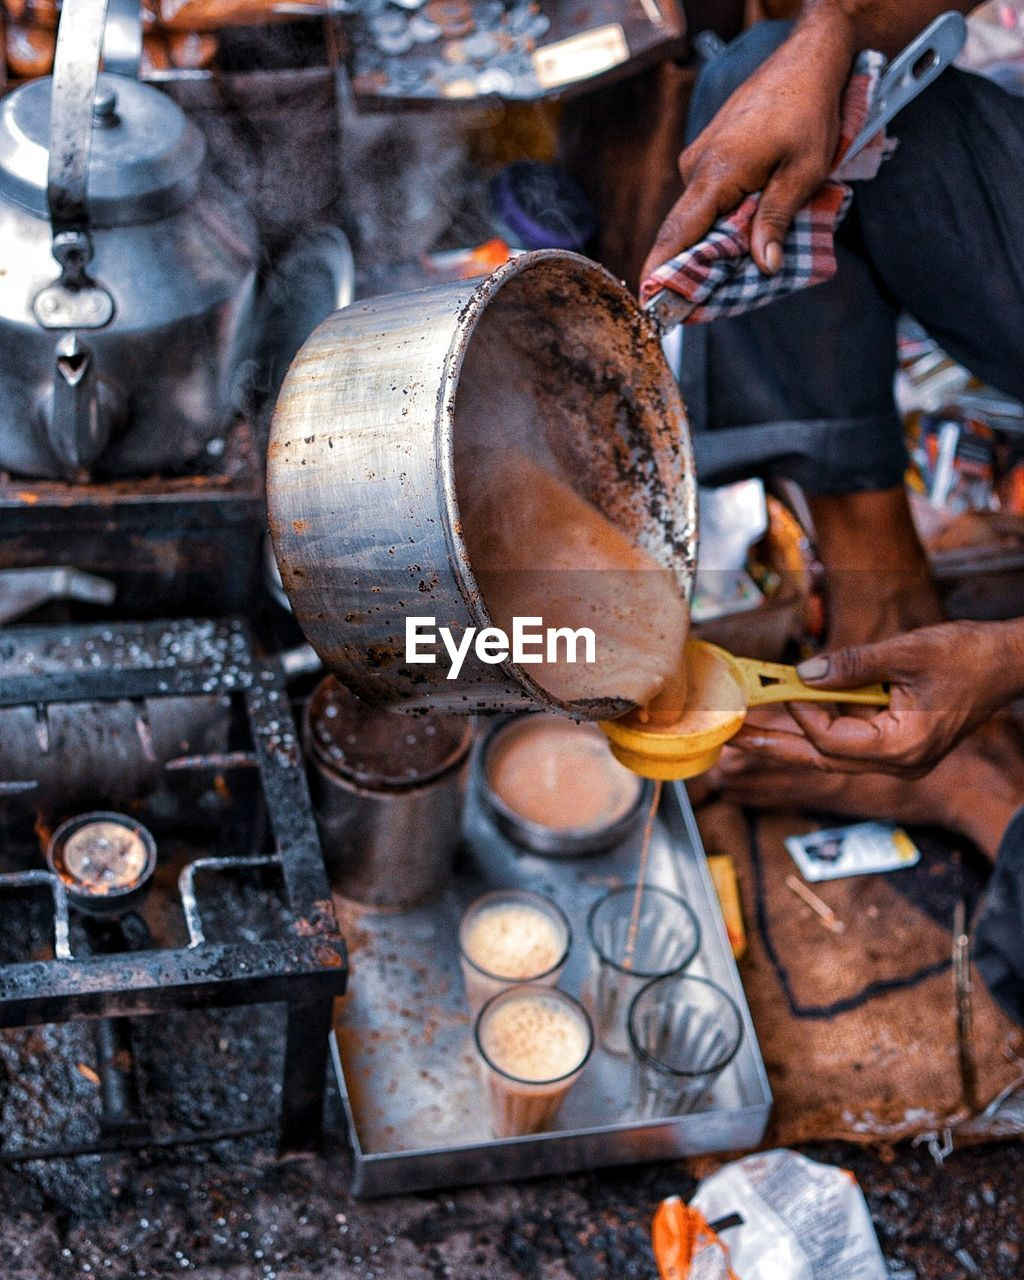 human hand, hand, human body part, one person, occupation, day, real people, holding, men, metal, working, heat - temperature, food and drink, focus on foreground, food, business, preparation, kitchen utensil, outdoors